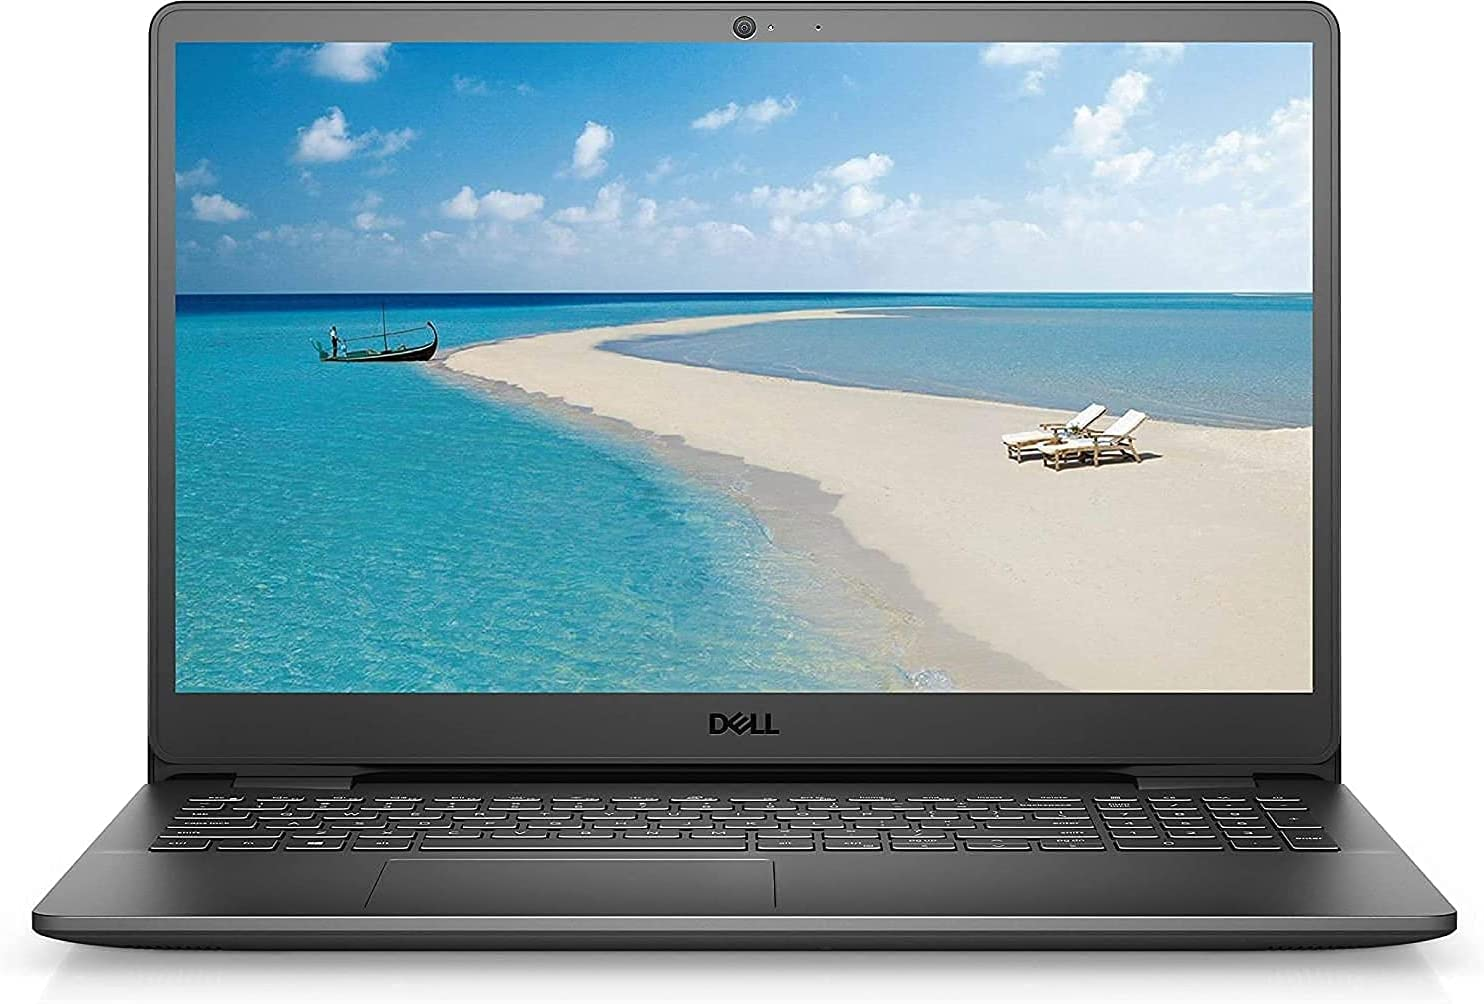 Dell Inspiron 3000 Business Laptop, 15.6